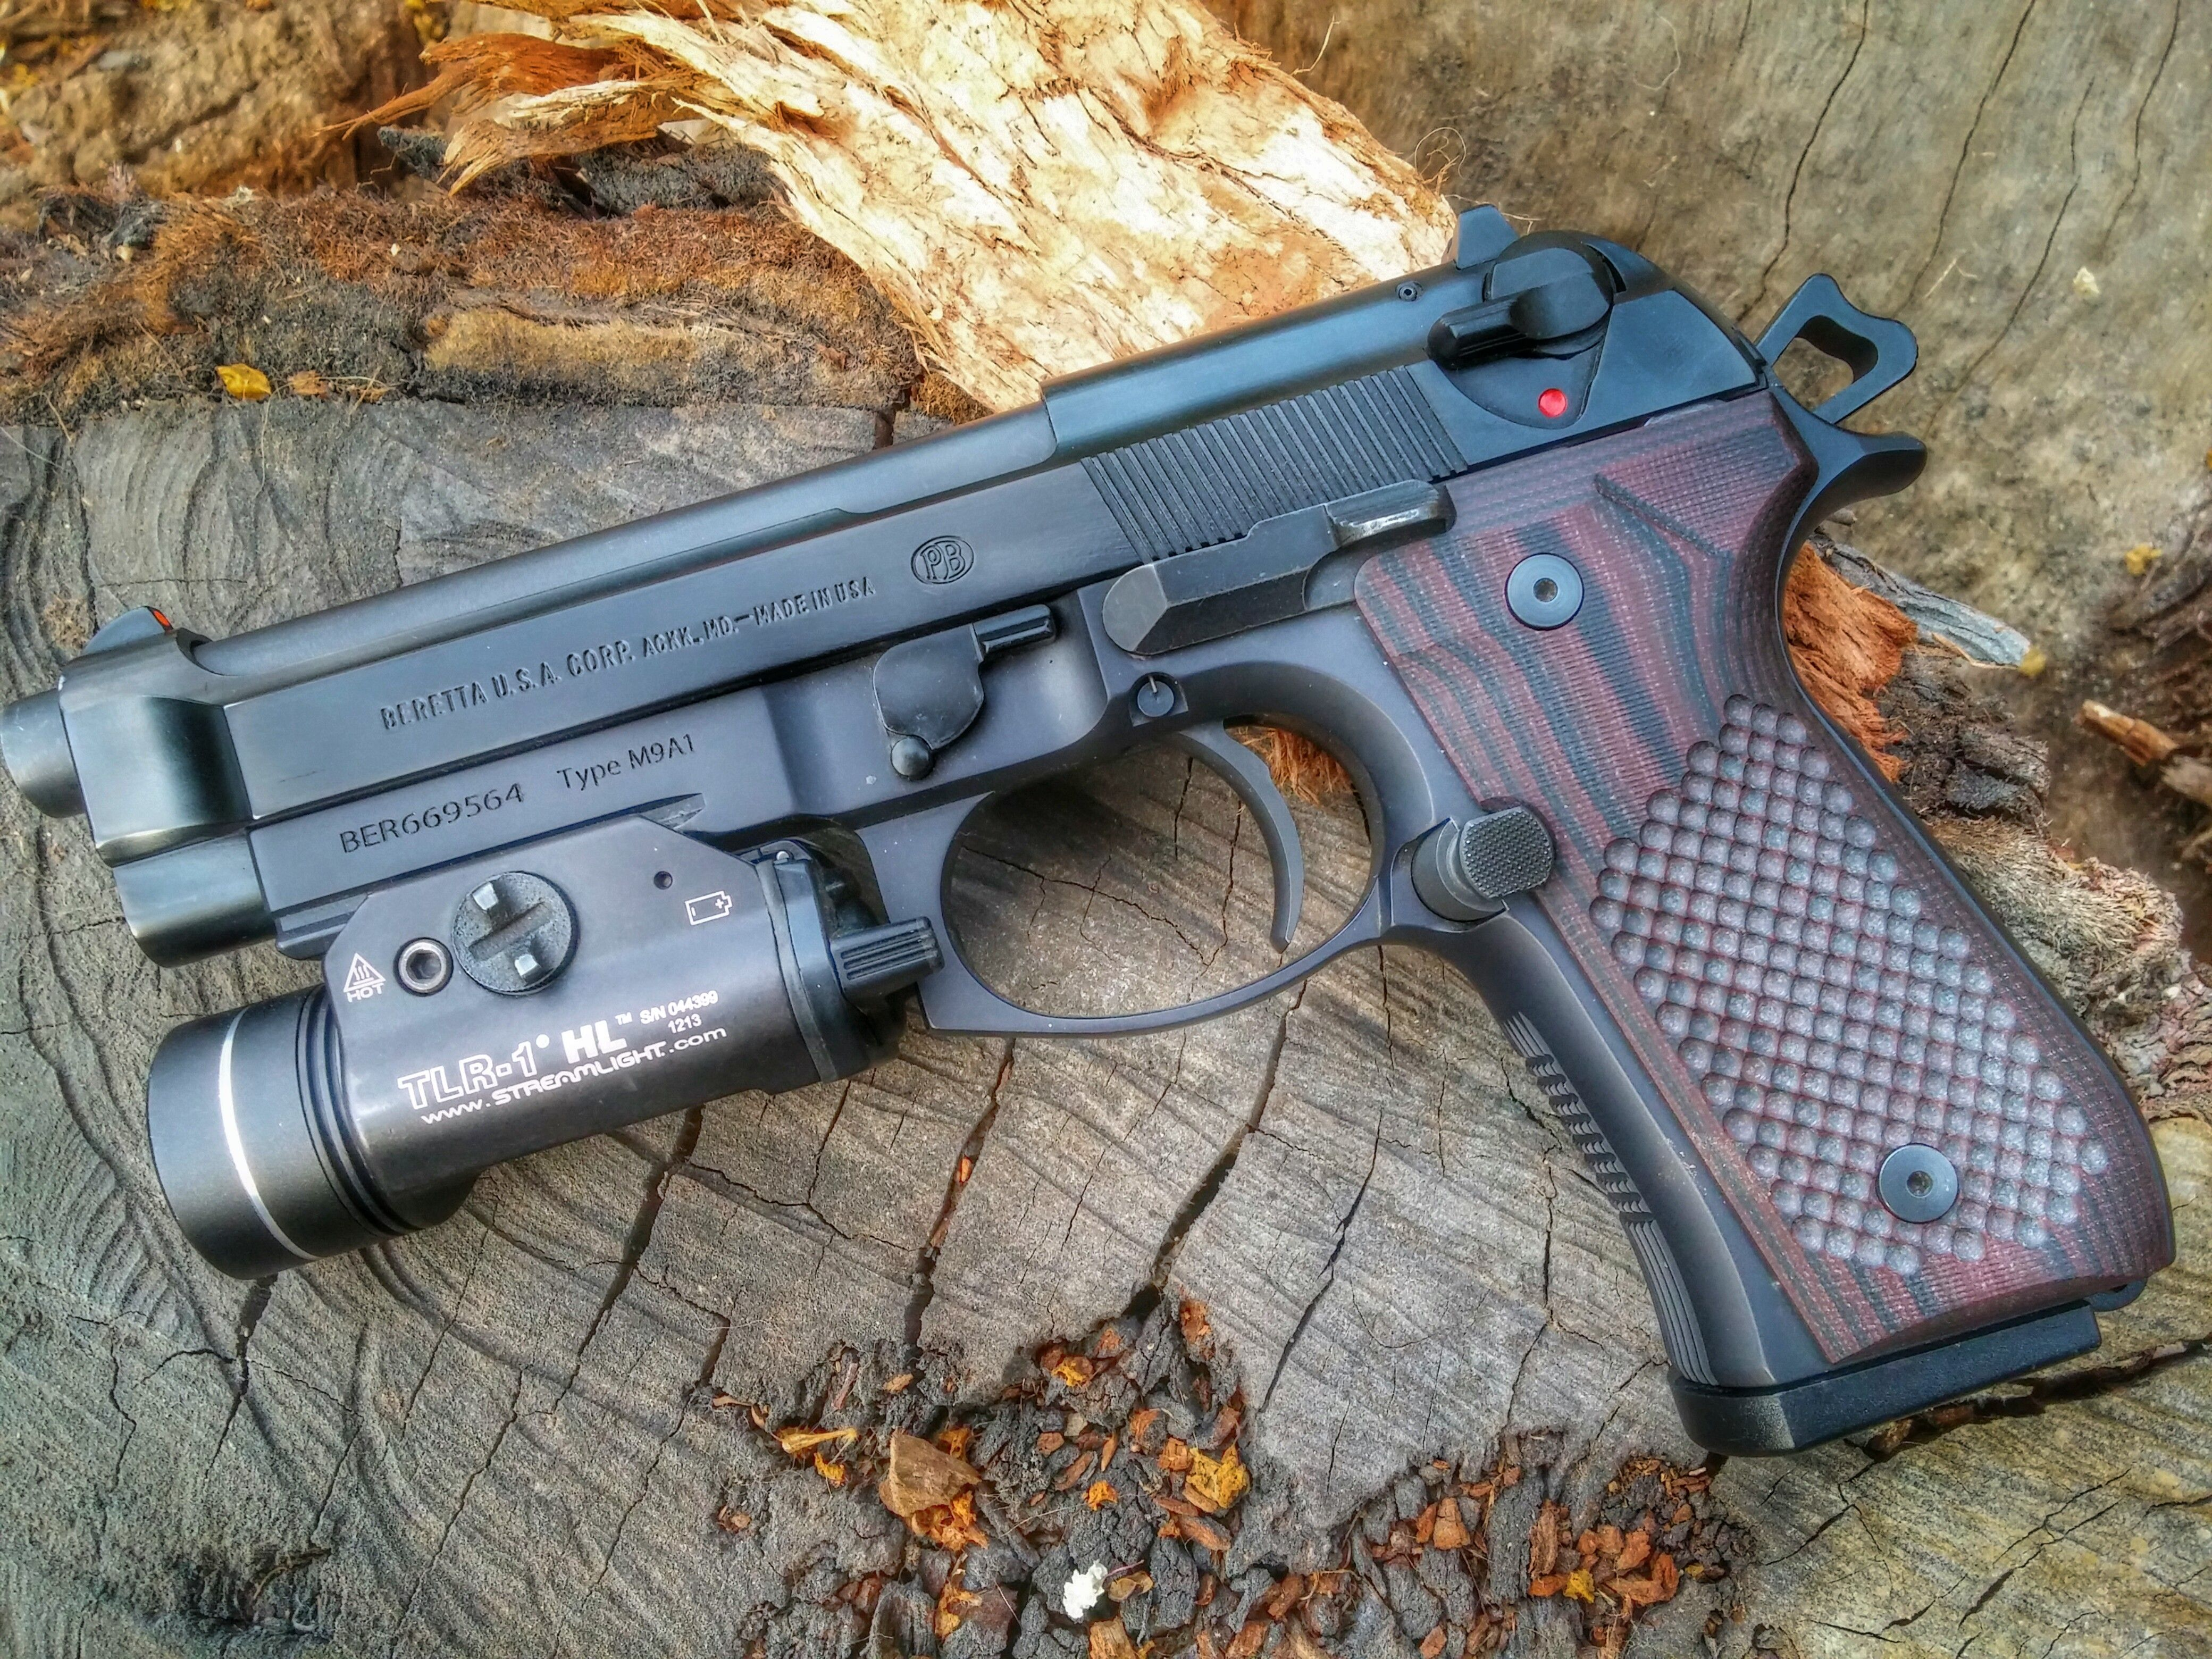 Beretta M9A1 with TLR-1HL